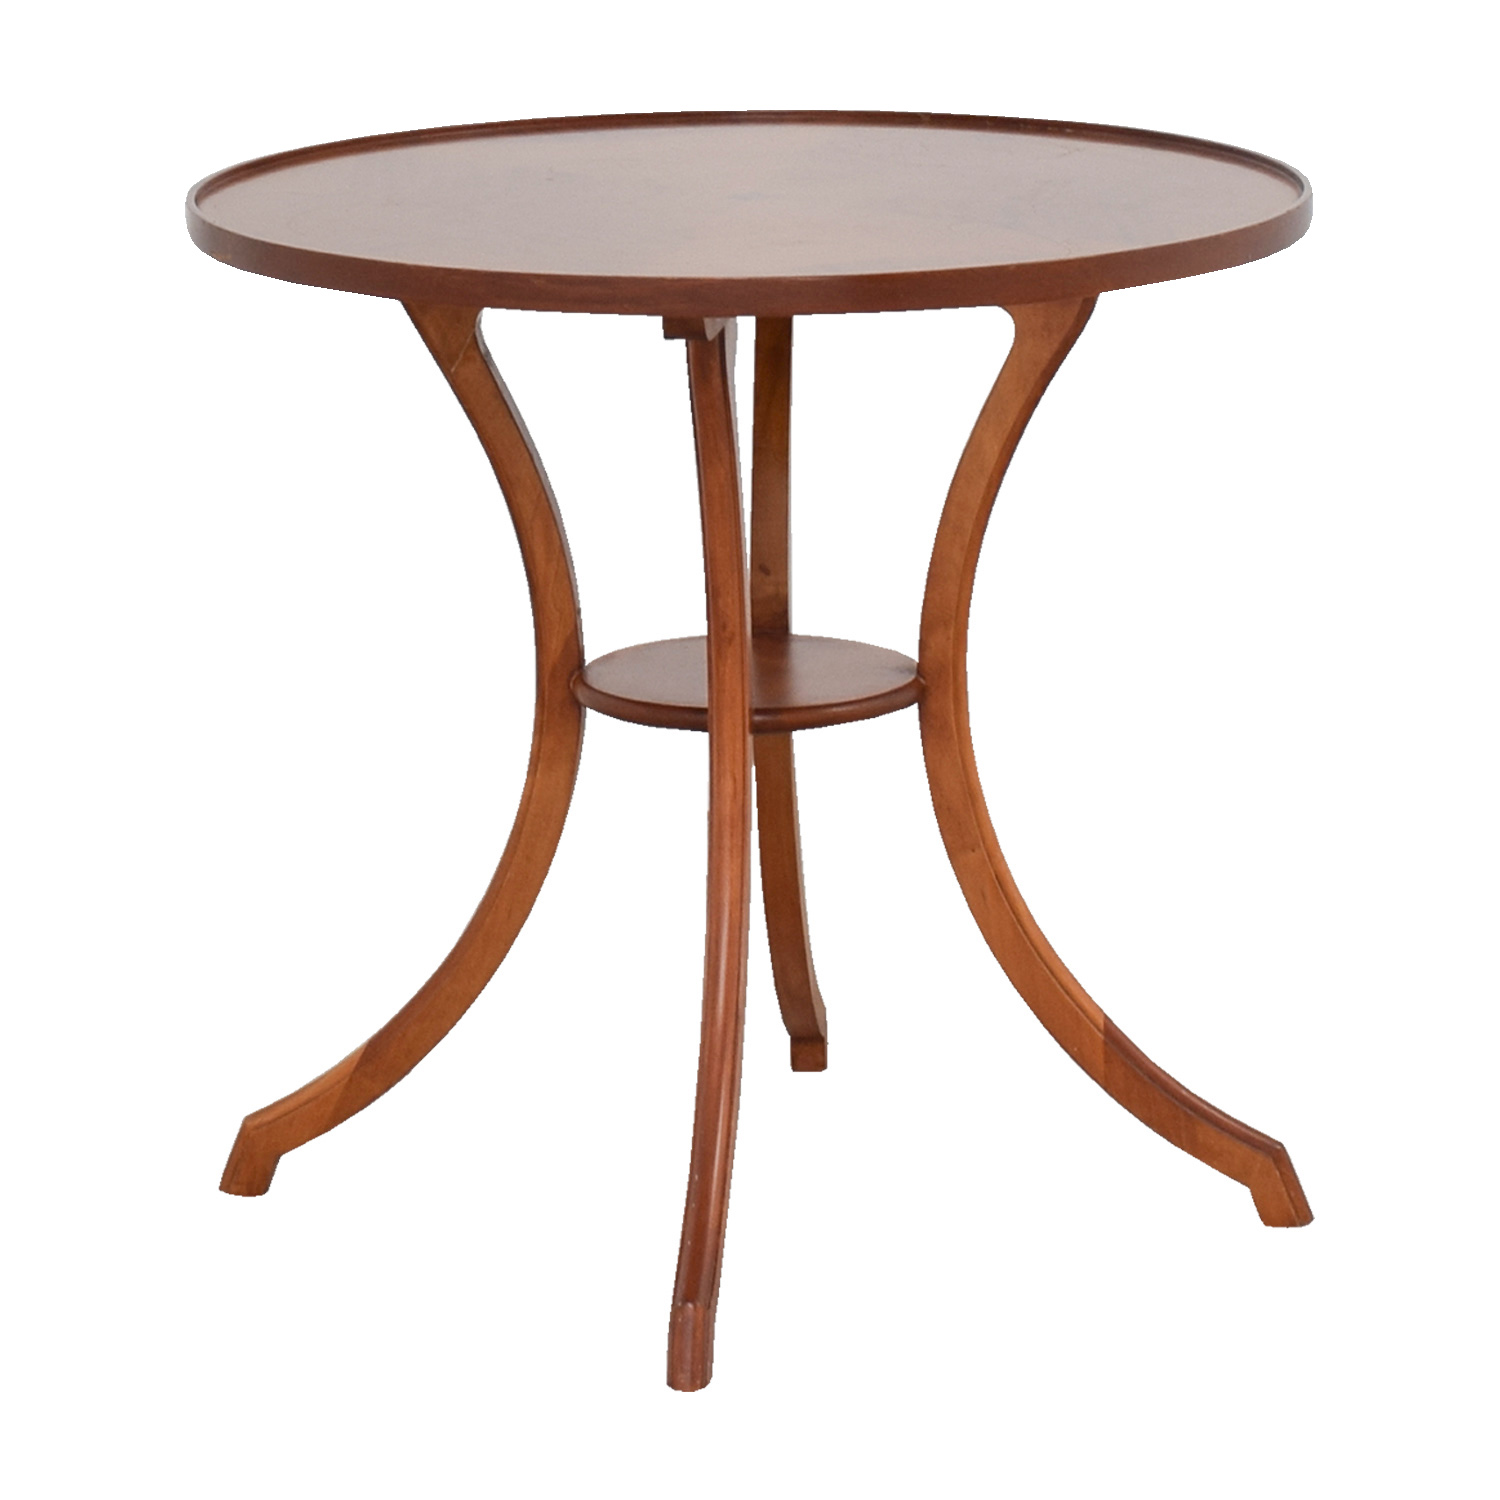 shop Furniture Masters Round Wood Accent Table Furniture Masters